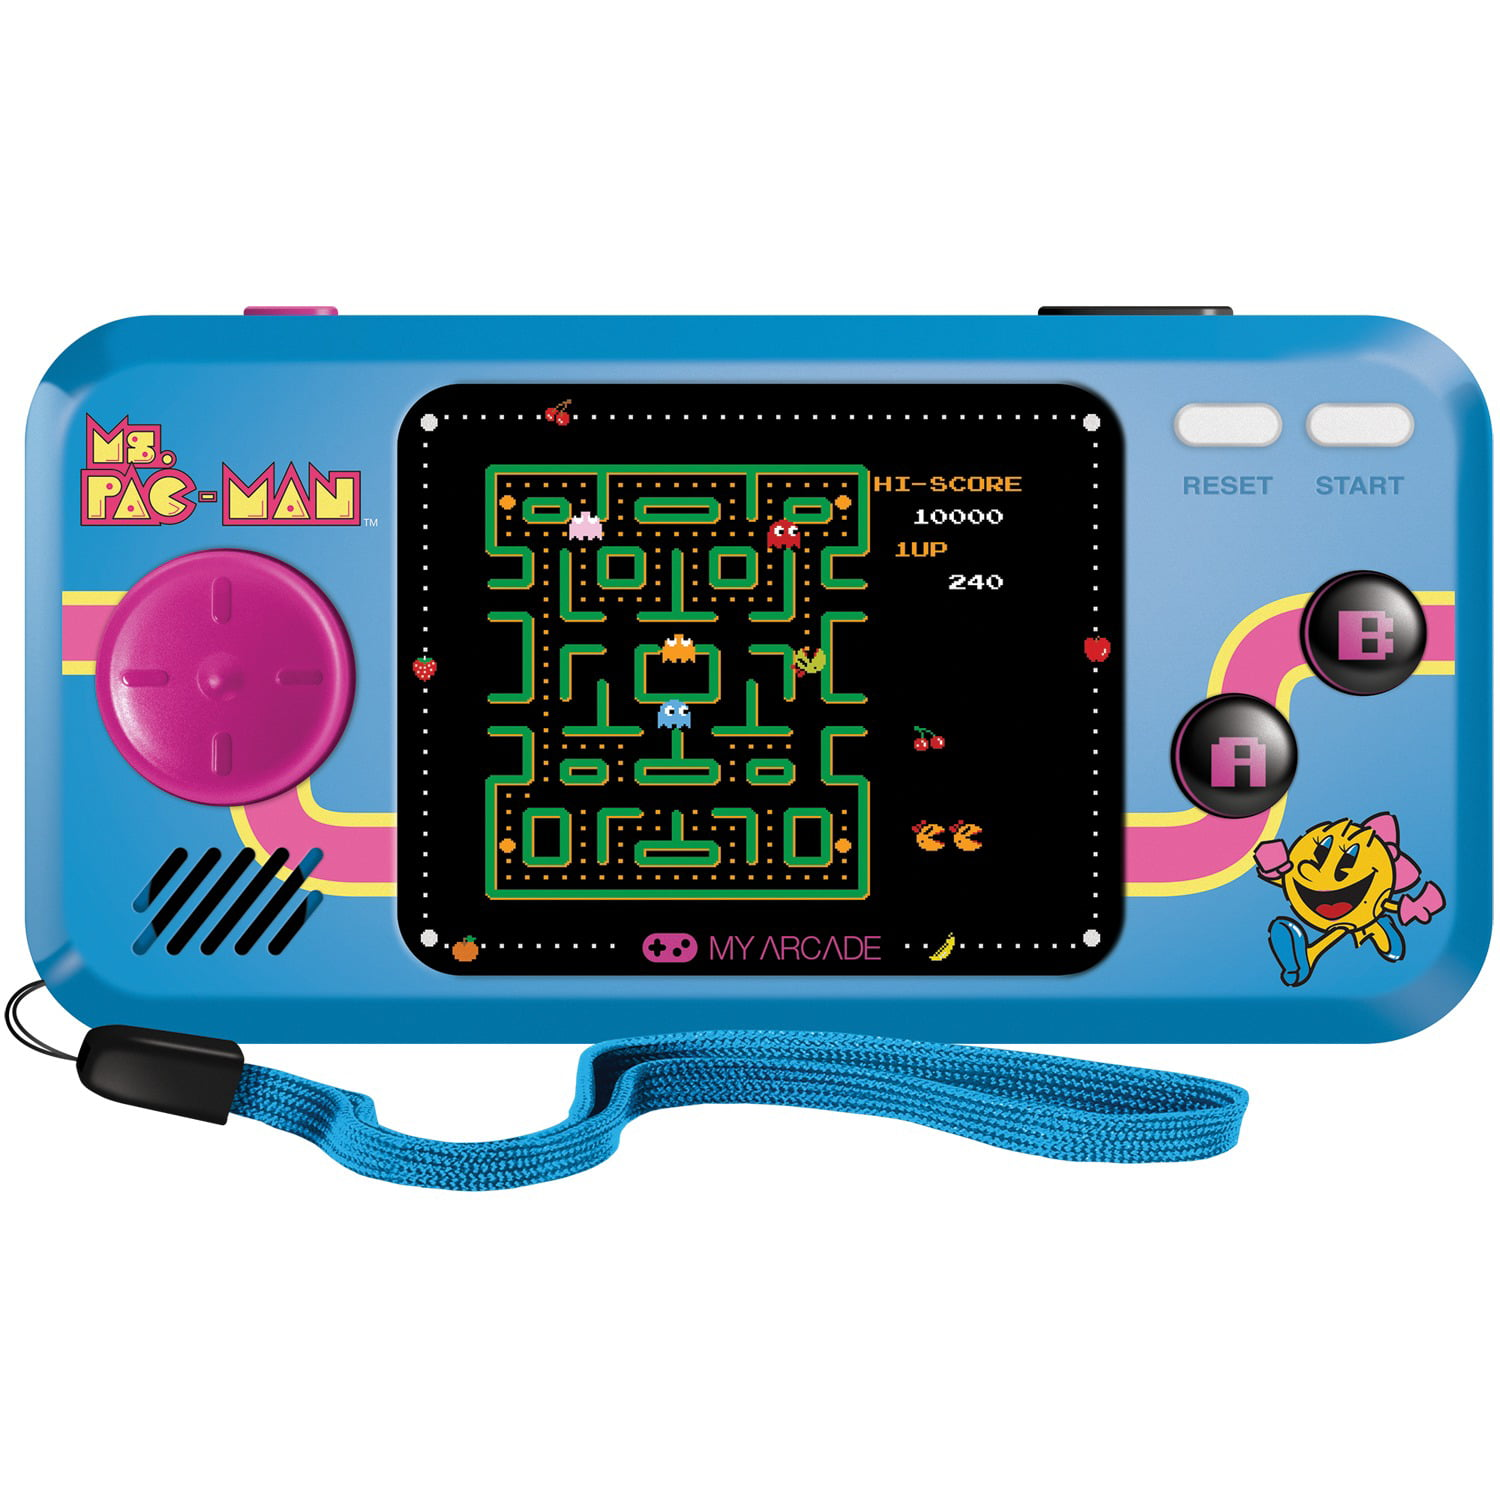 Ms Pac Man Pocket Player Collectible Handheld Game Console With 3 Games Walmart Com Walmart Com